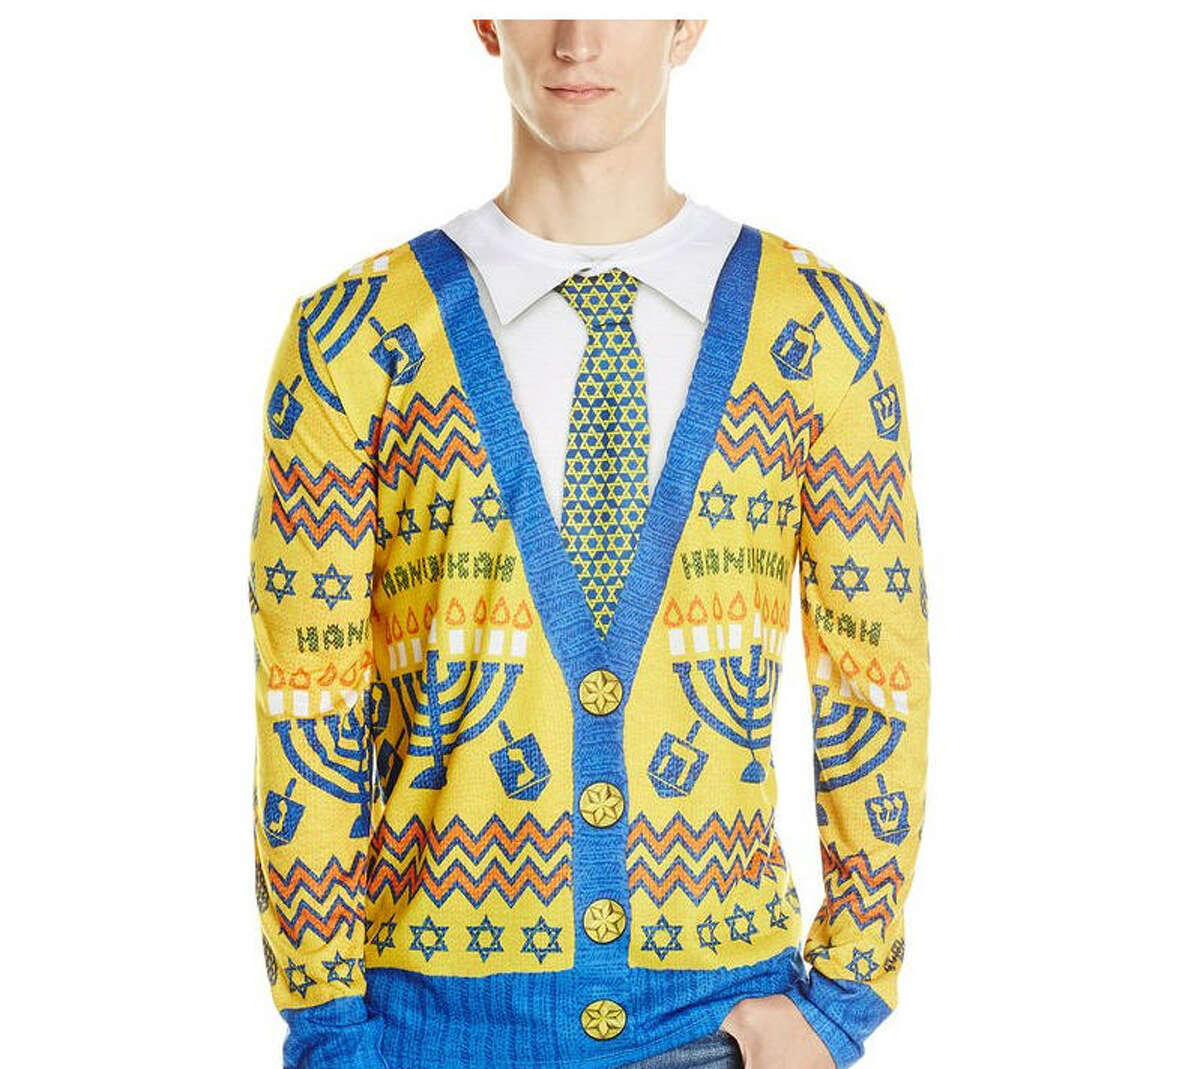 You can get this Hanukkah sweater here.